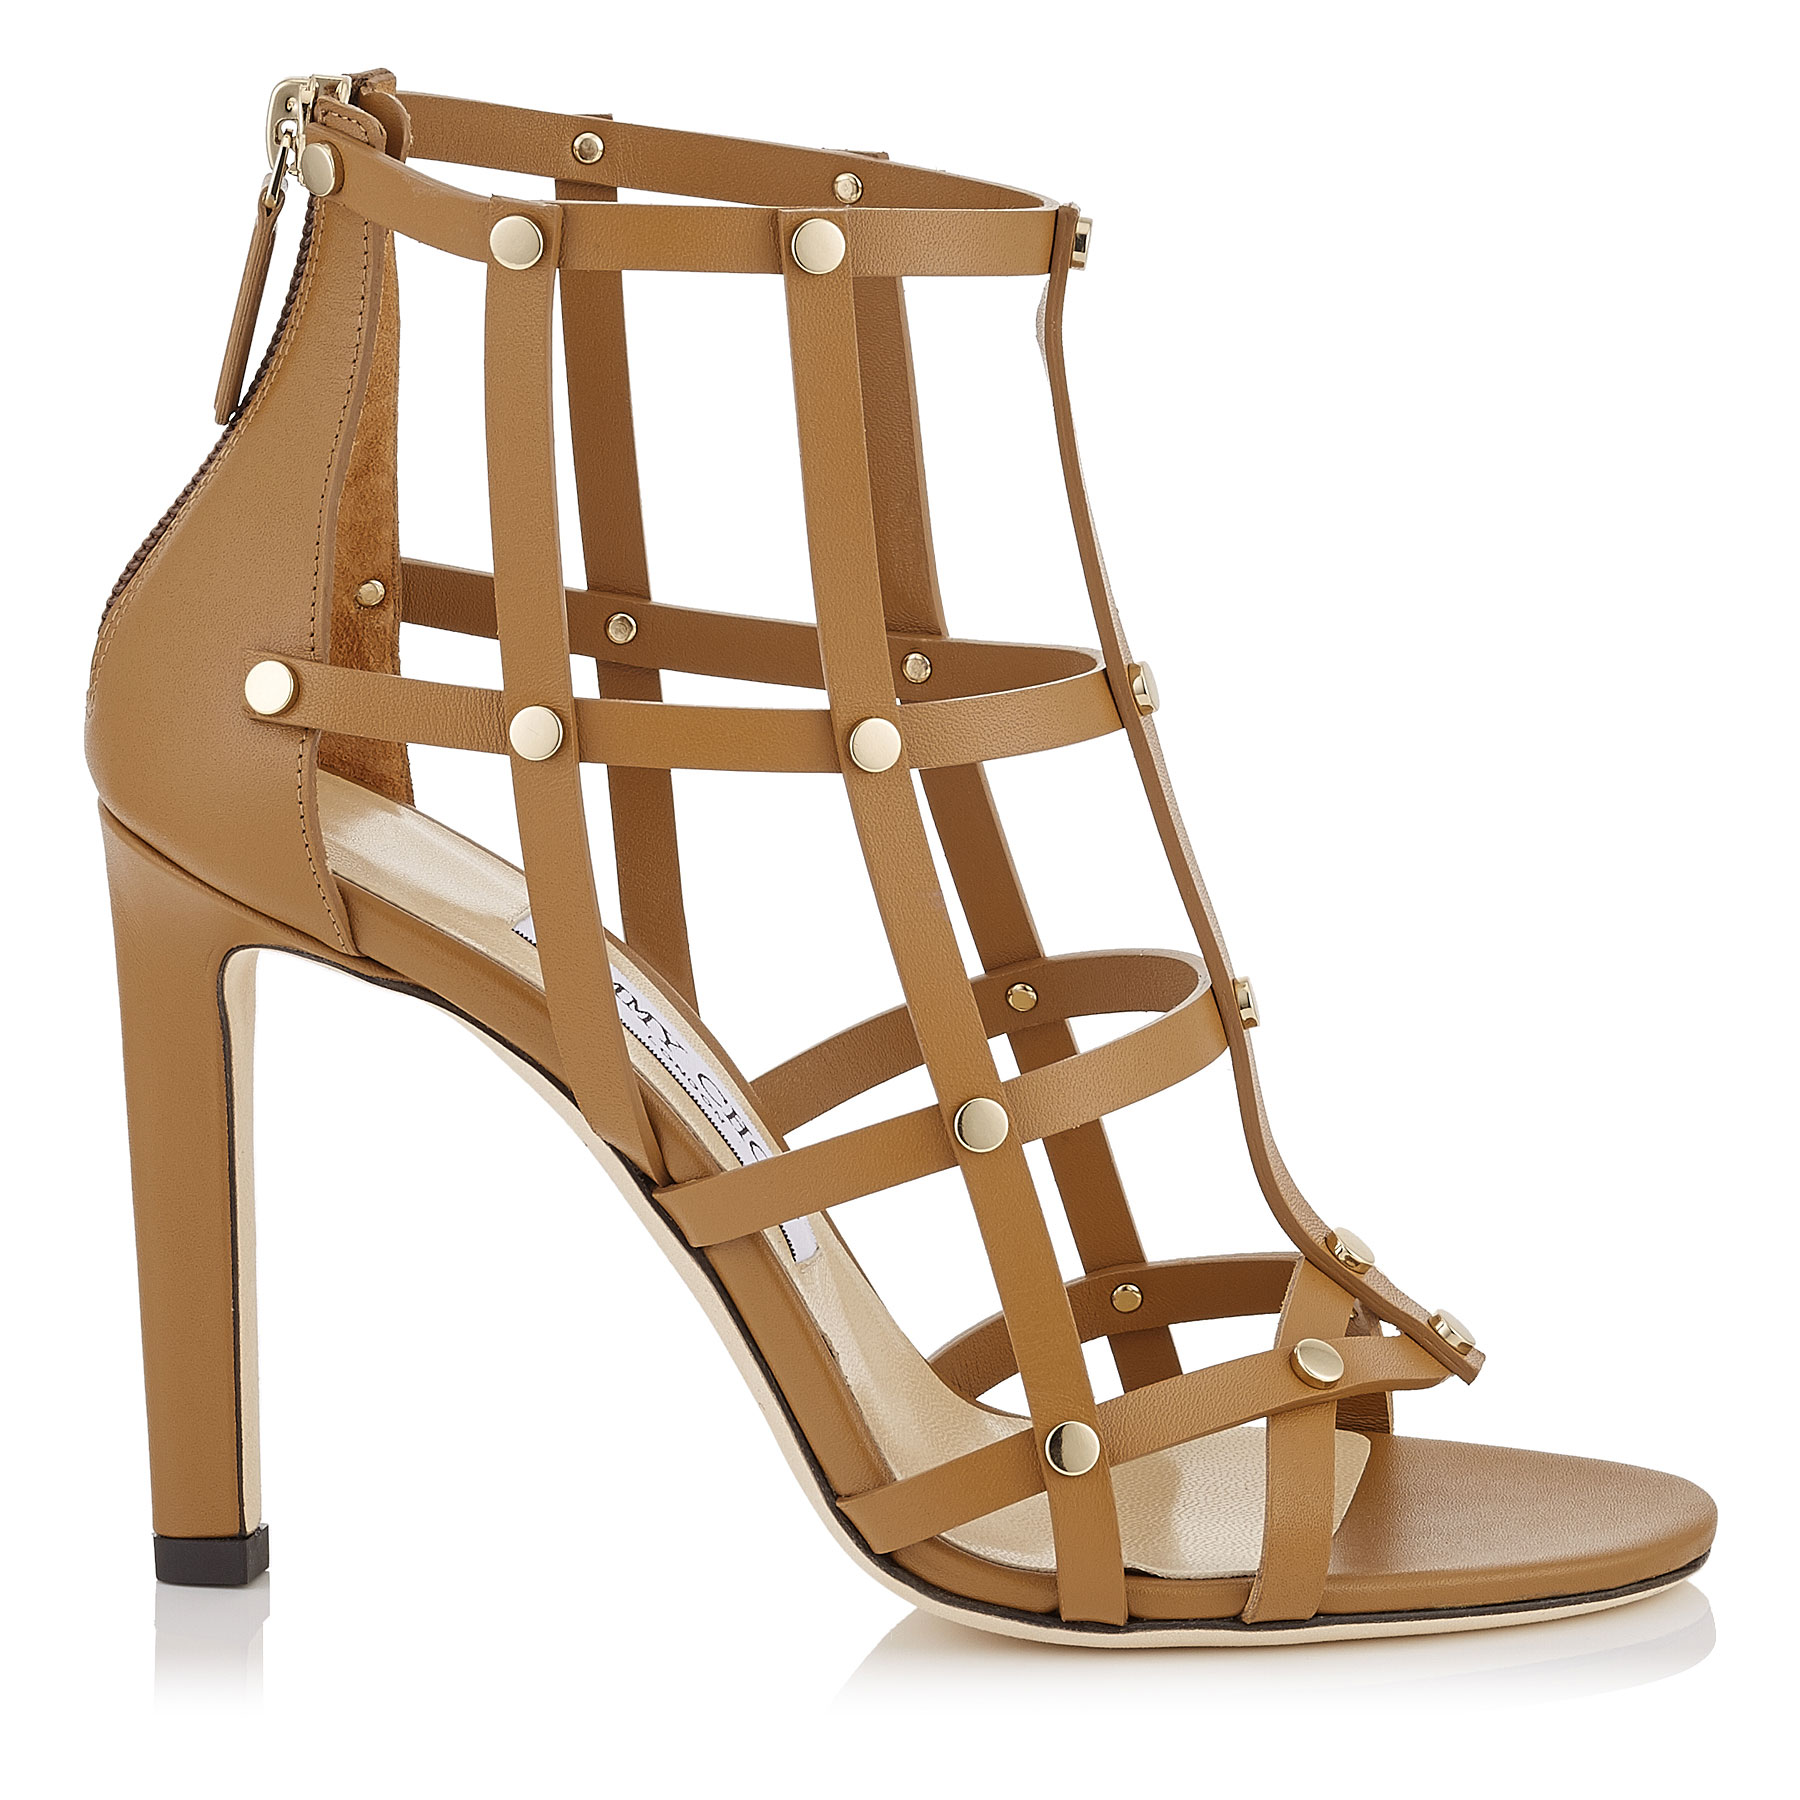 TINA 100 Cuoio Calf Leather Sandals with Light Gold Studs by Jimmy Choo